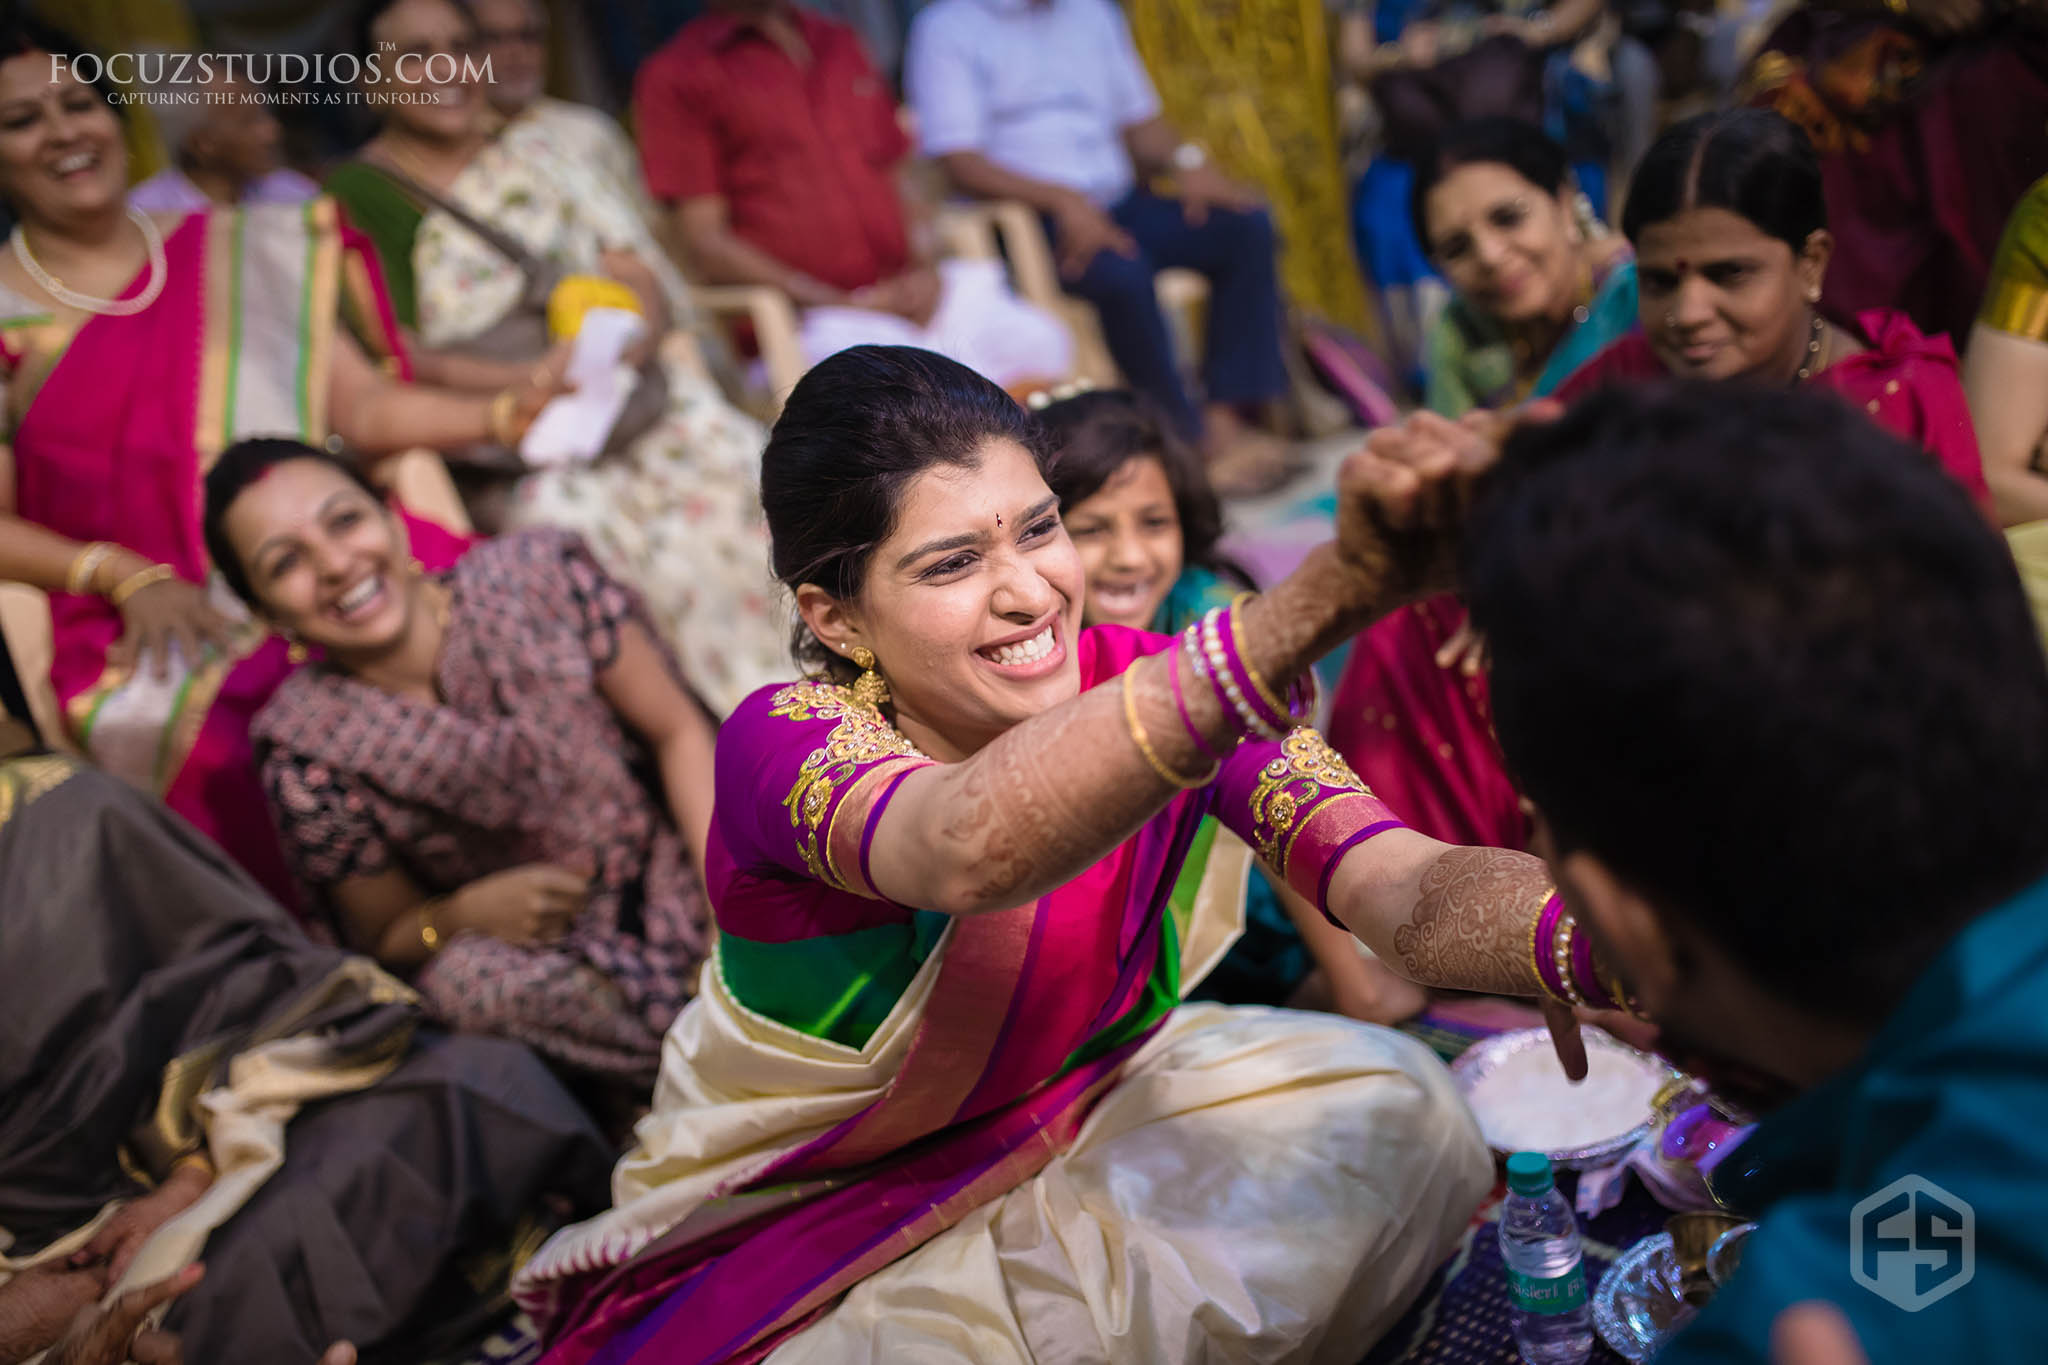 brahmin-wedding-photographers-focuz-studios13